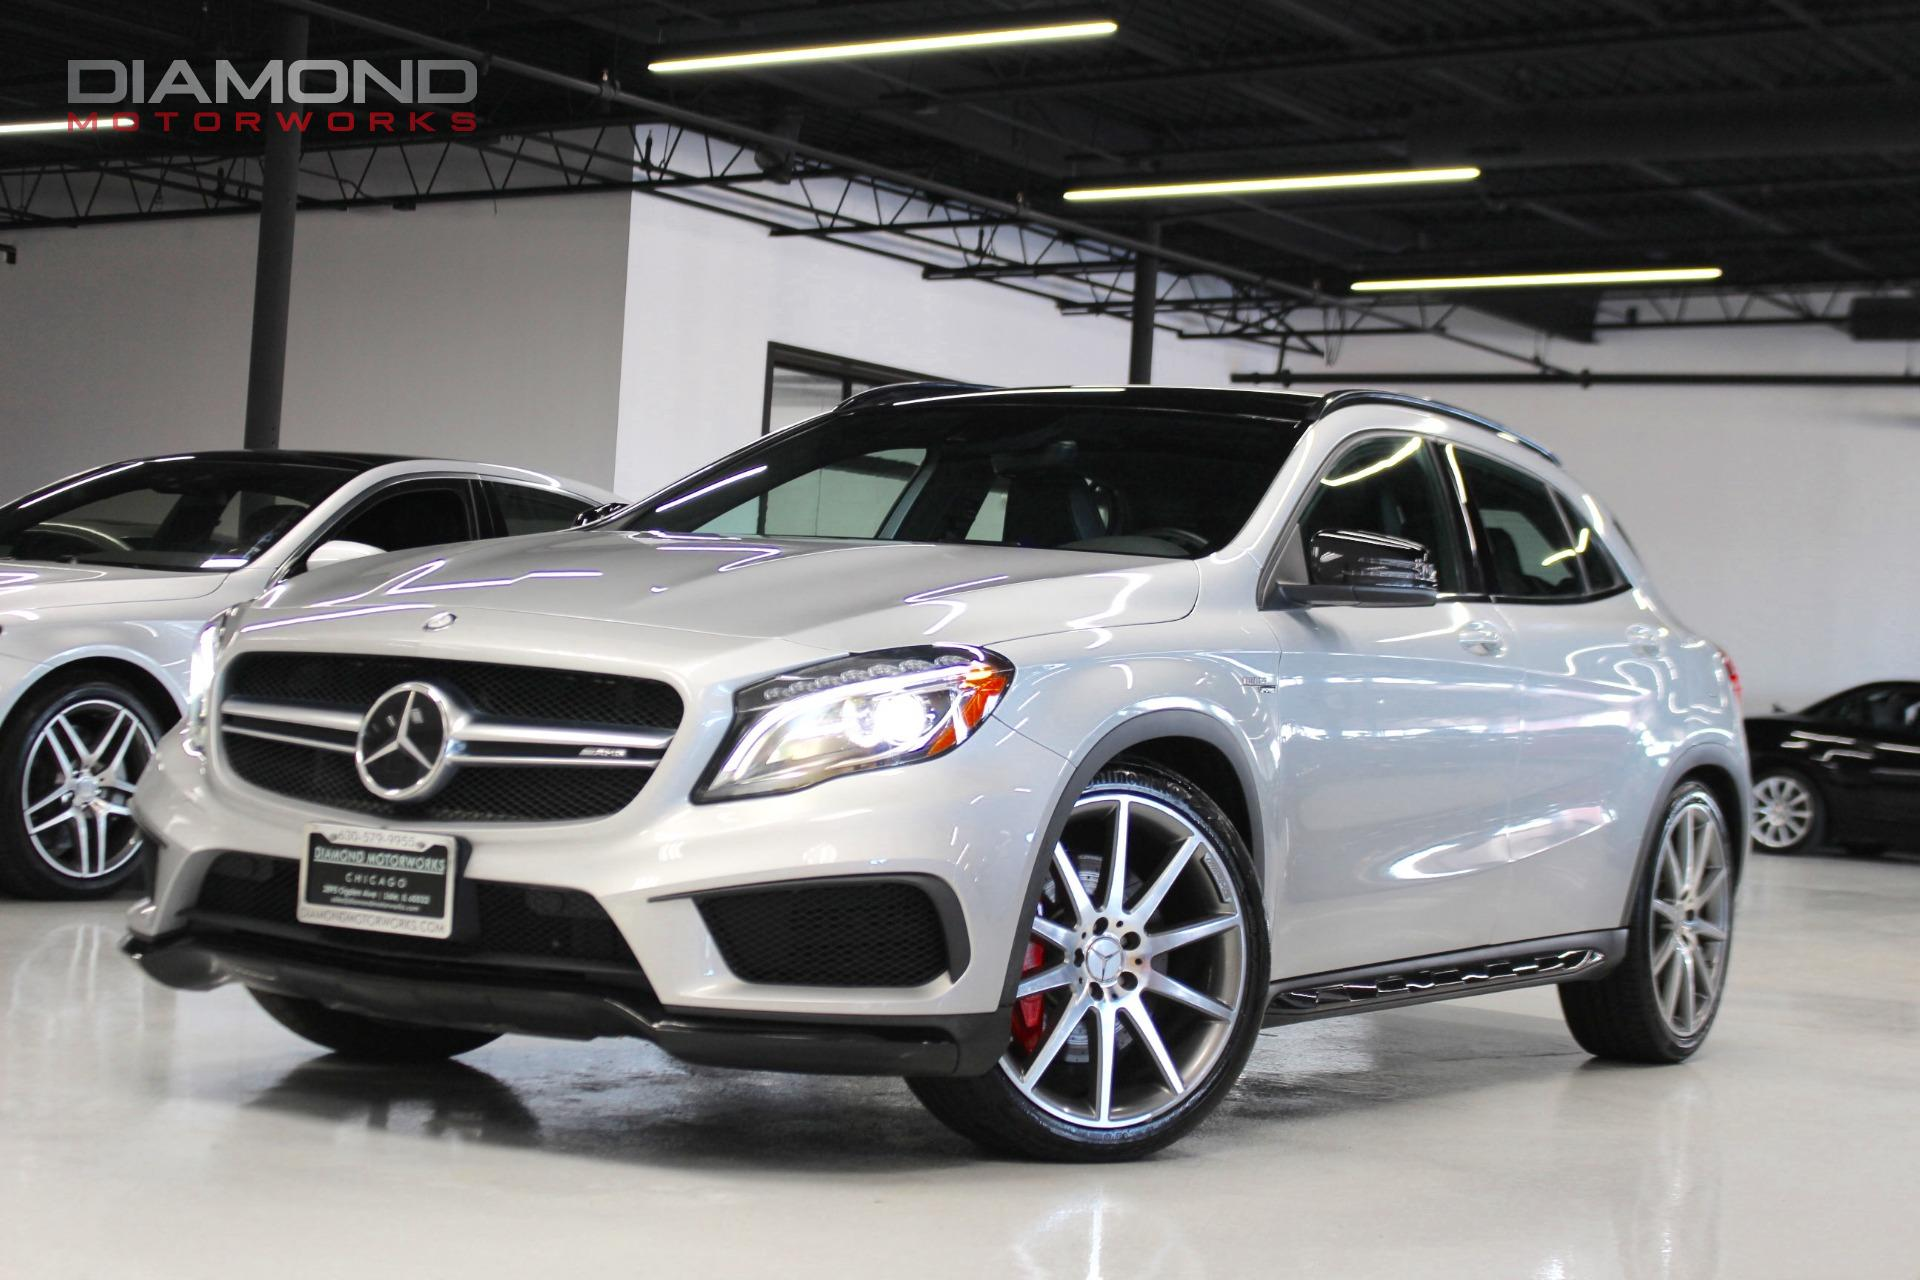 2015 mercedes benz gla gla 45 amg stock 031985 for sale near lisle il il mercedes benz dealer. Black Bedroom Furniture Sets. Home Design Ideas